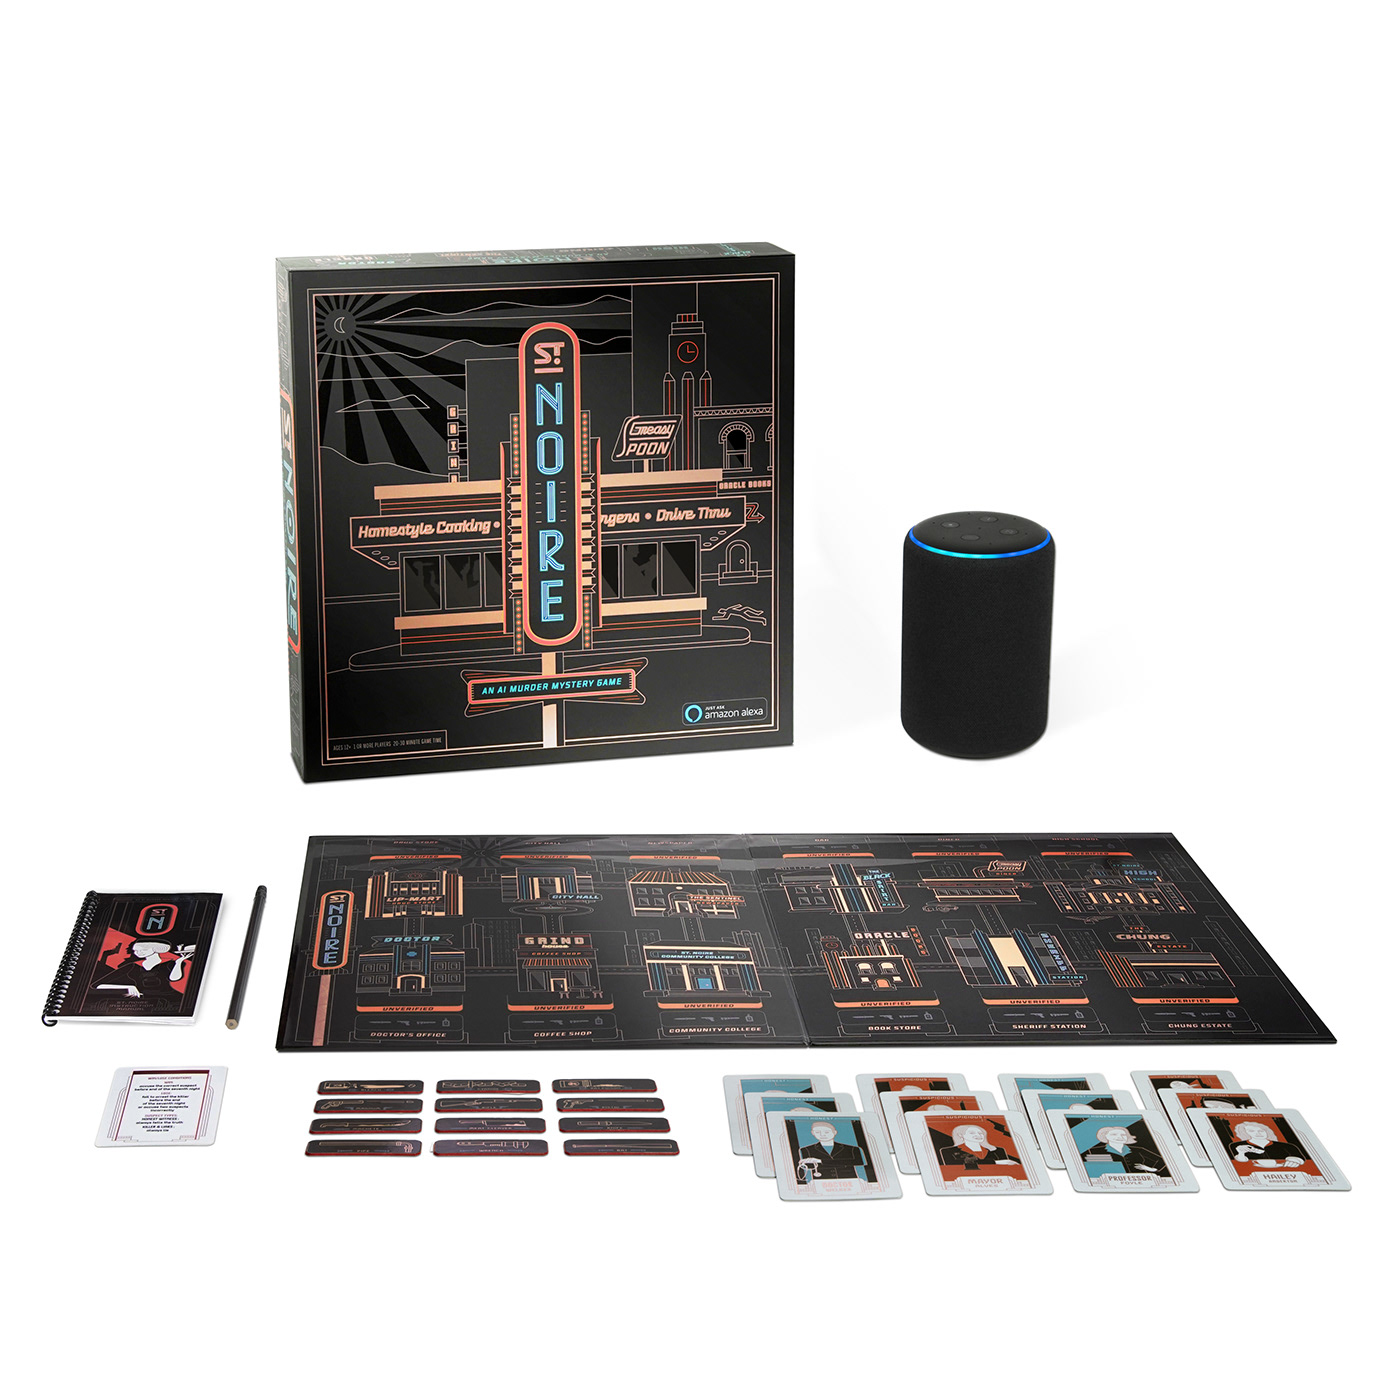 Kevin Cantrell amazon alexa x2 board game Interactive game St. Noire murder mystery packaging design Brand Design Satellite Office